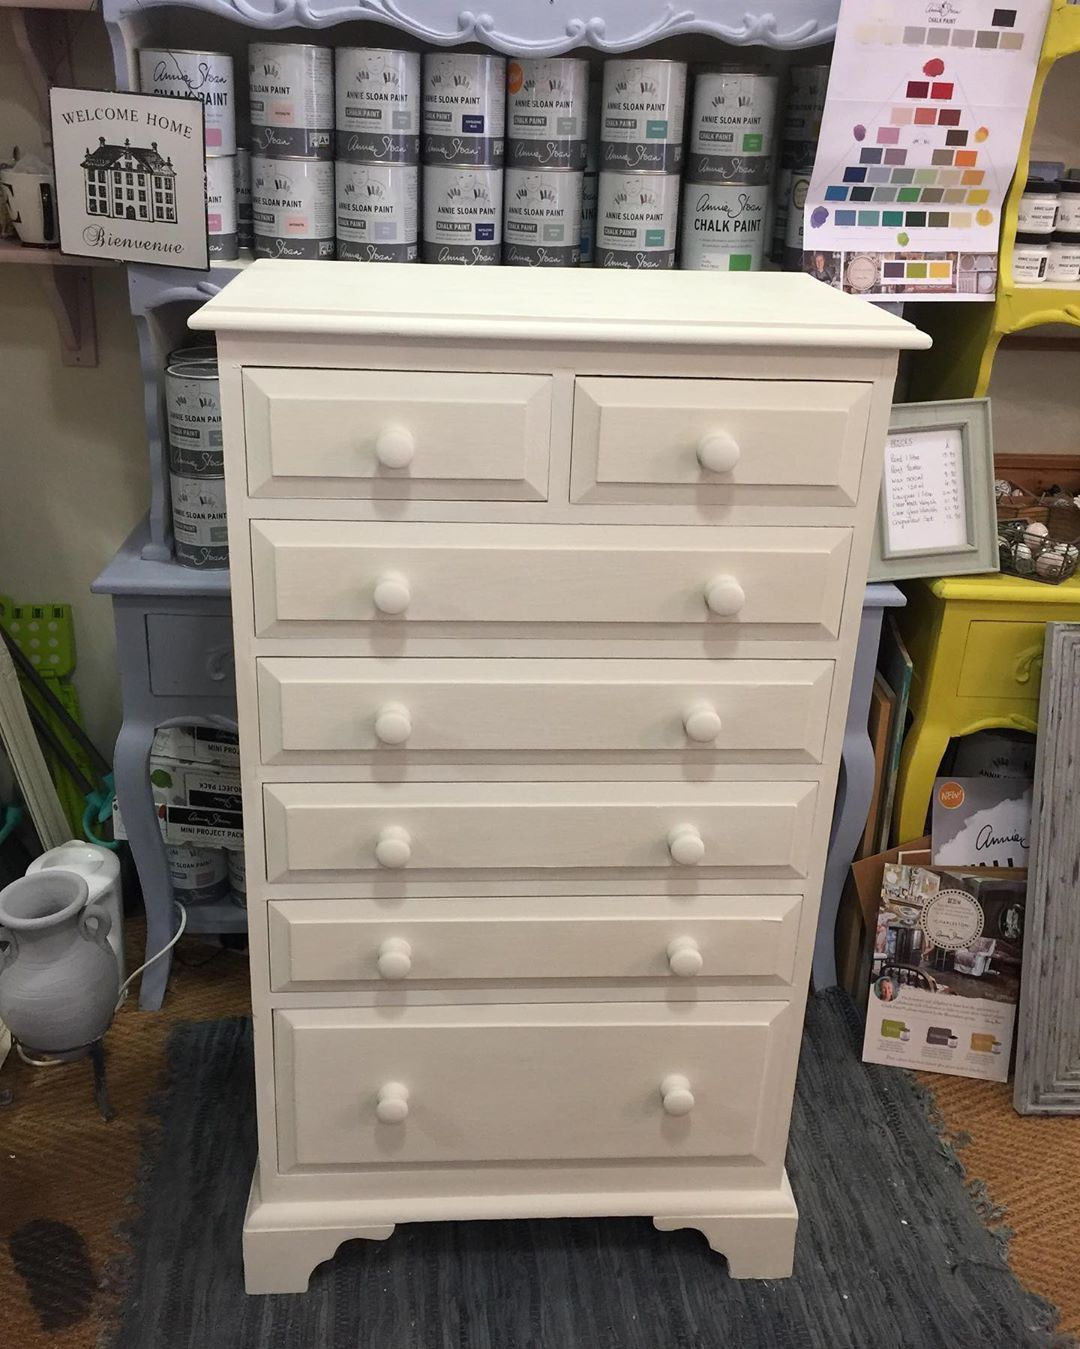 Matching Bedroom Furniture Sourced And Painted In Annie Sloan Old White Chalk Paint Anniesloanchalk Annie Sloan Old White White Chalk Paint Upcycled Furniture